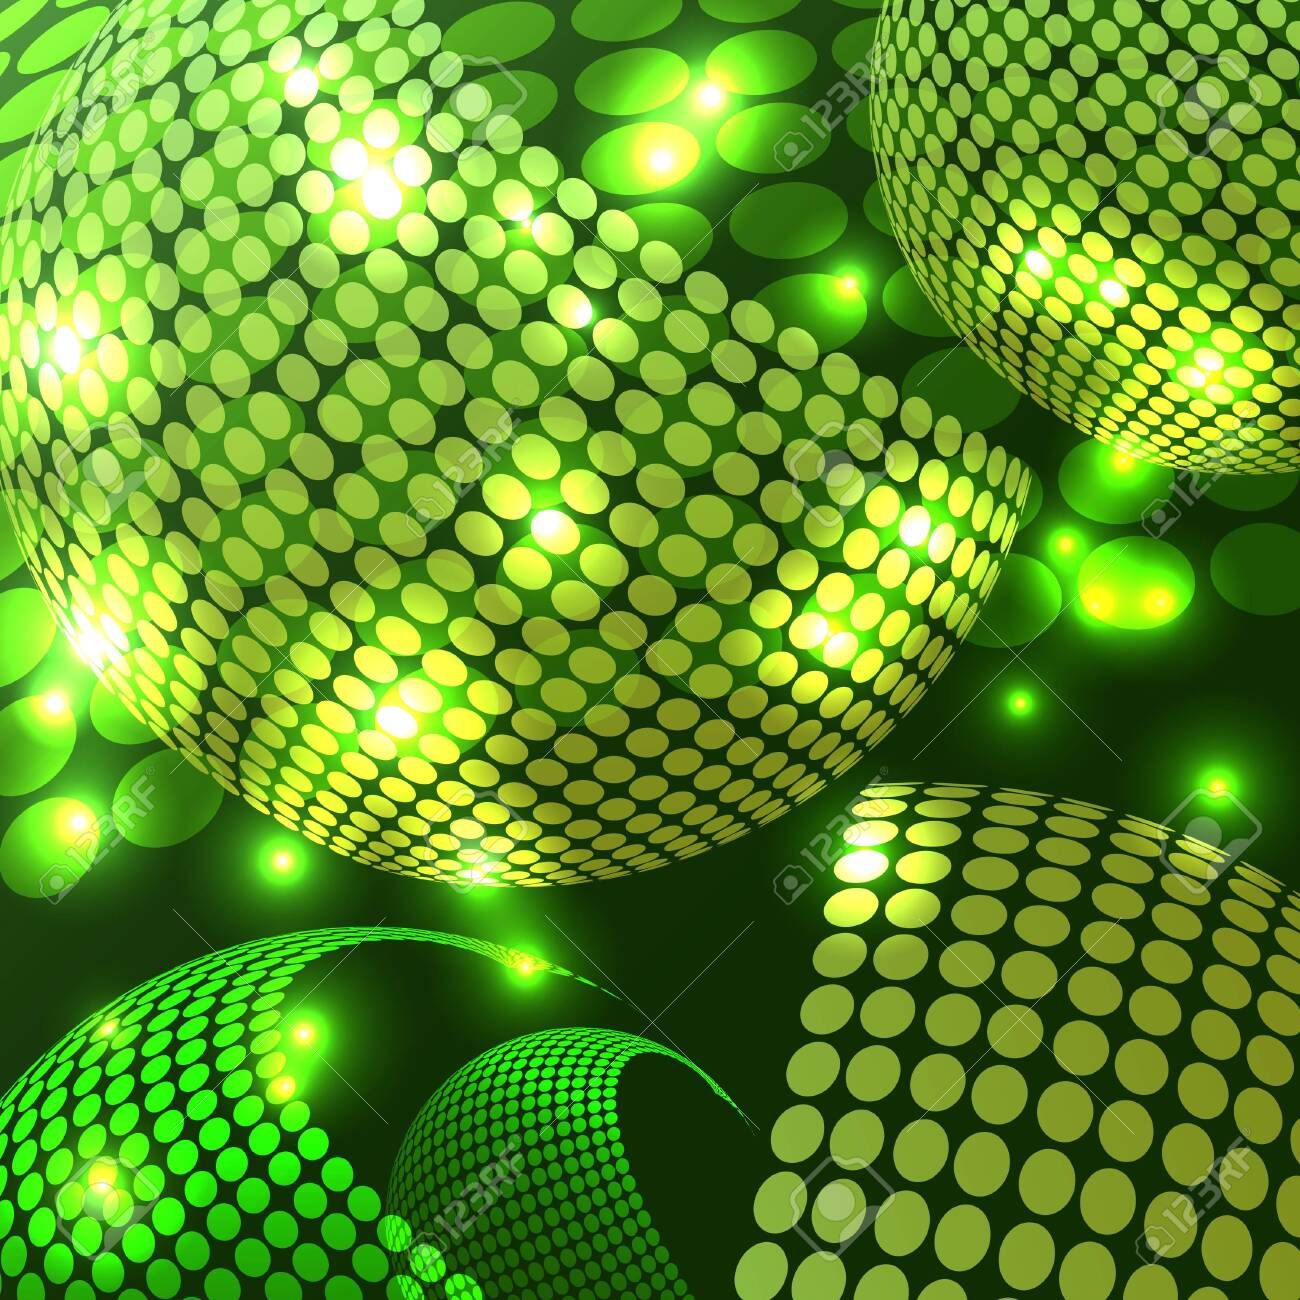 An abstract rendering of a disco night with shades of green. - 130400269